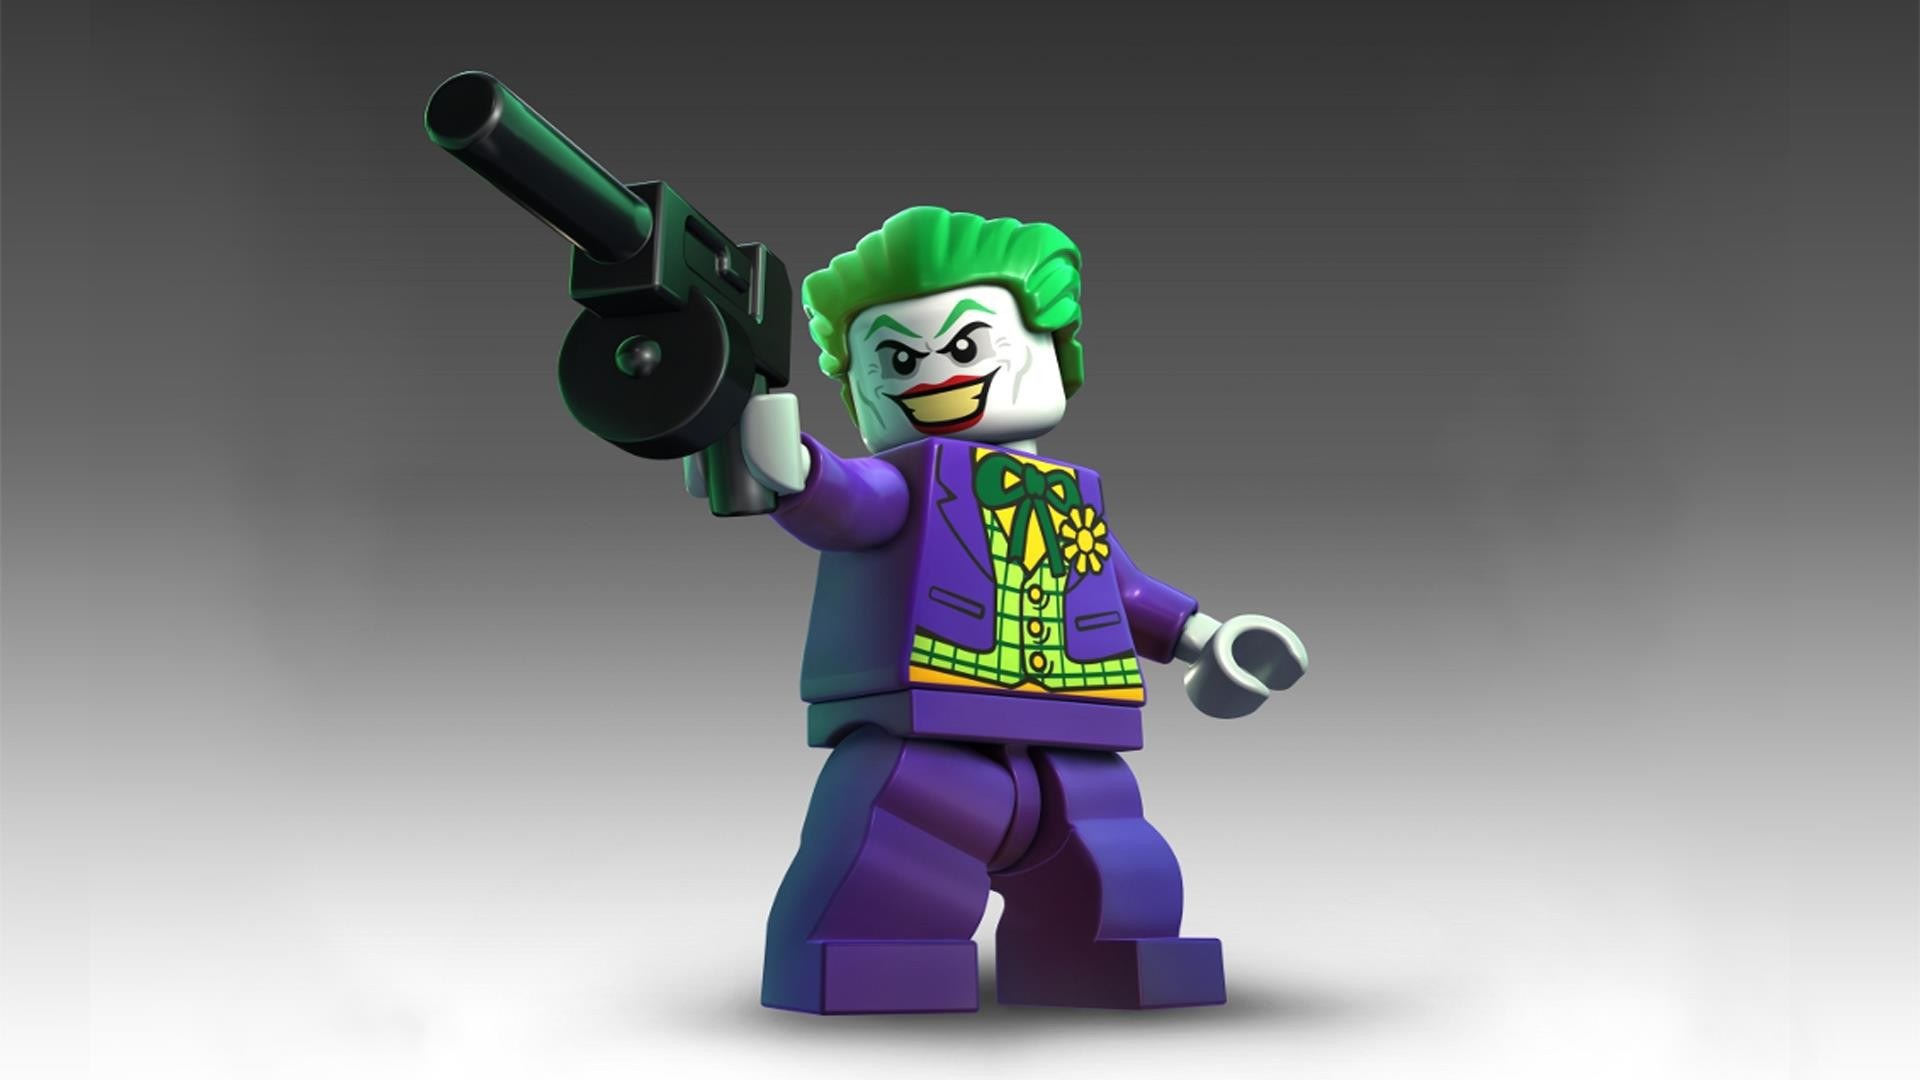 1920x1080 Batman Joker Lego HD Wallpaper Batman Joker Lego